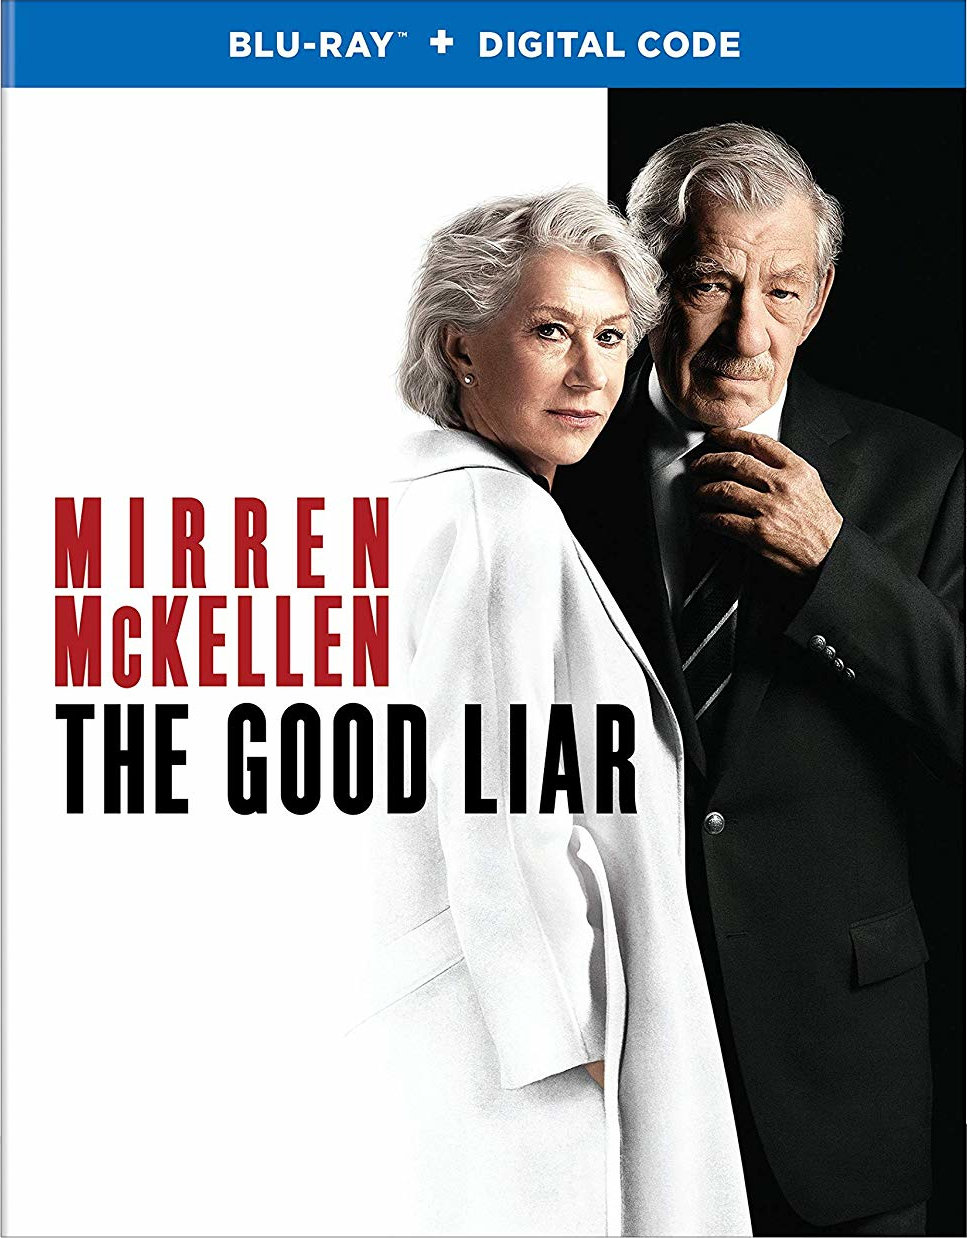 The Good Liar (2019) poster image